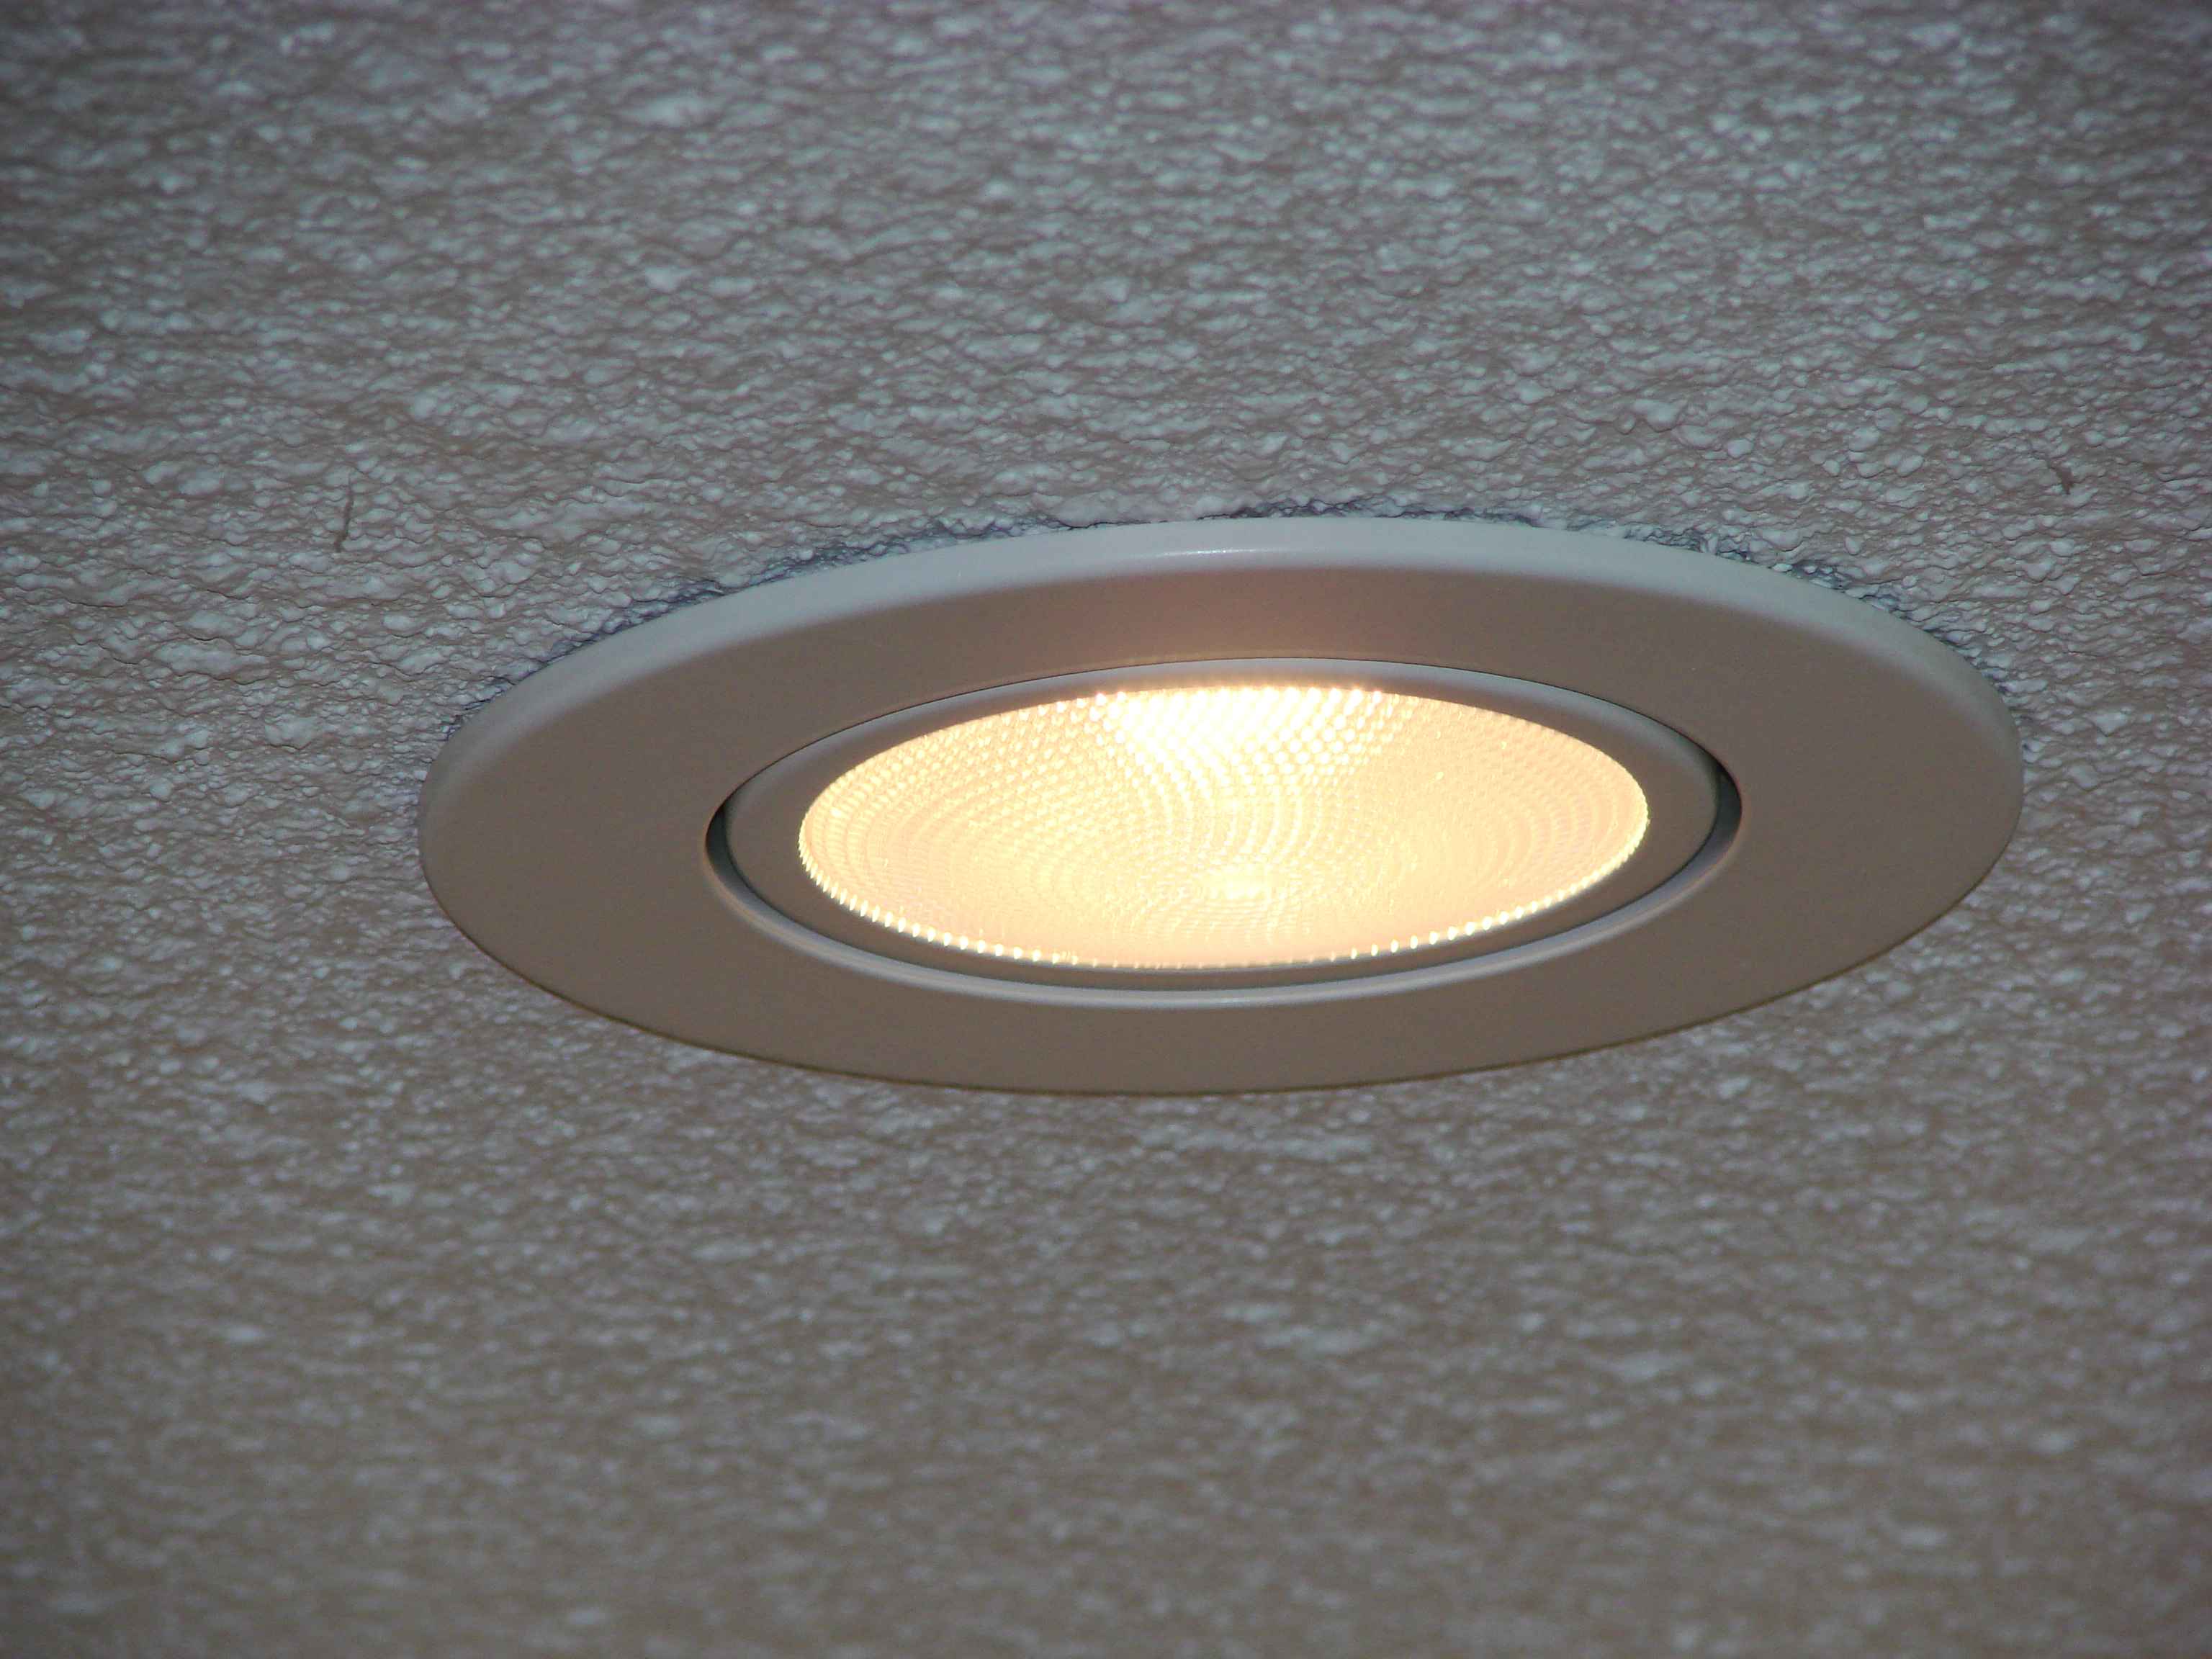 10 reasons to install Recessed halogen ceiling lights | Warisan Lighting